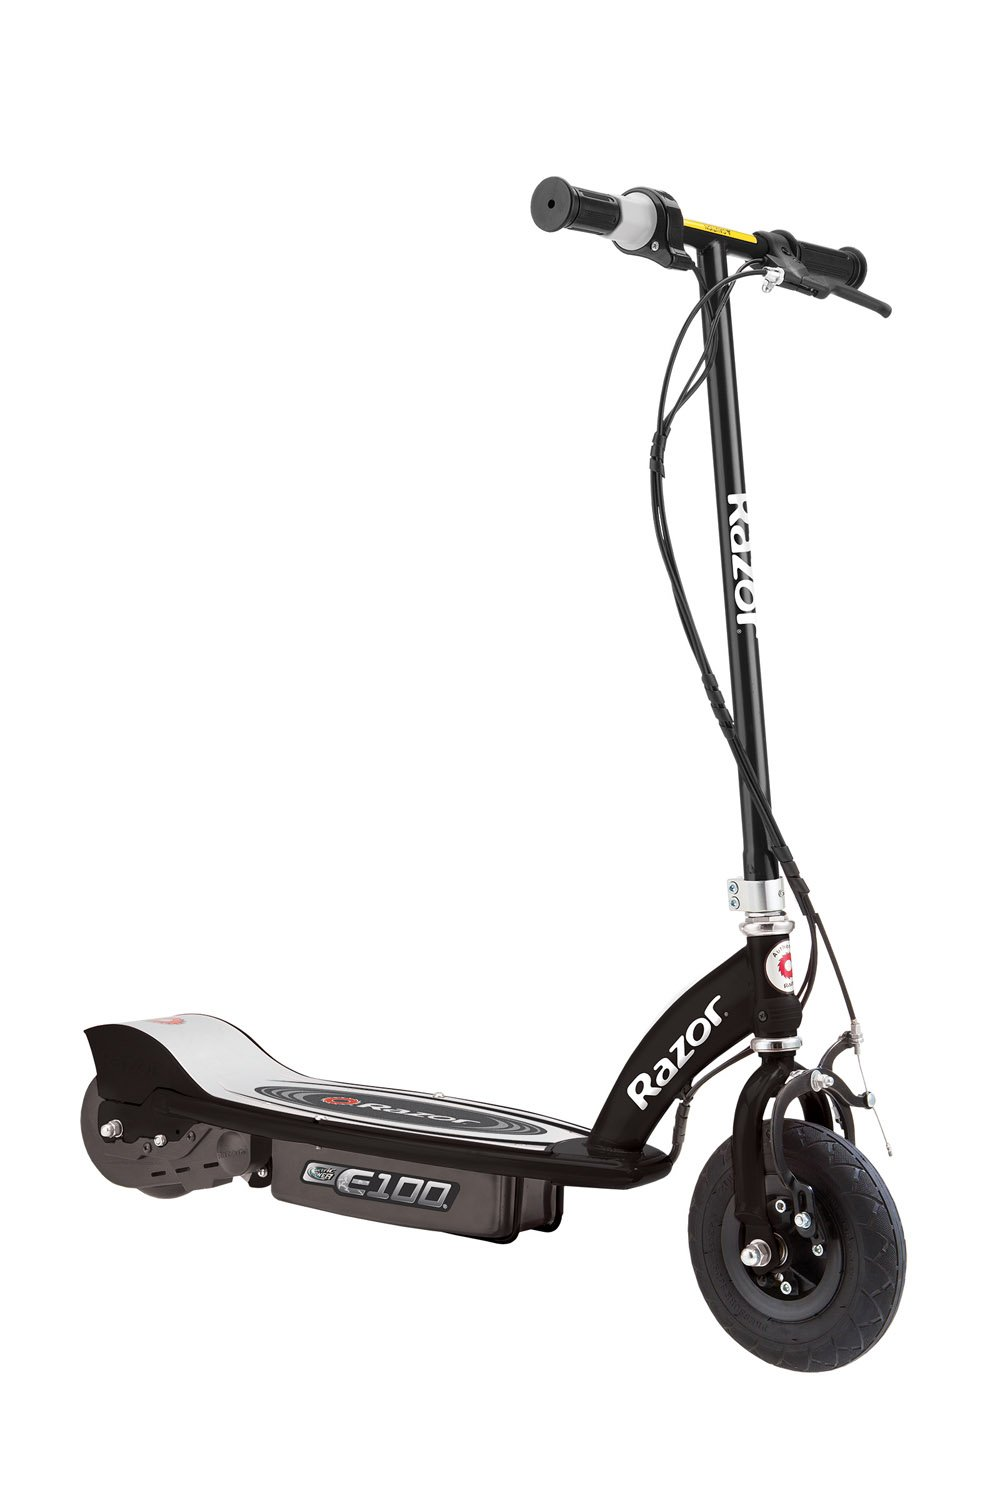 Razor E100 Motorized 24-Volt Electric Rechargeable Ride-On Outdoor Scooter Black